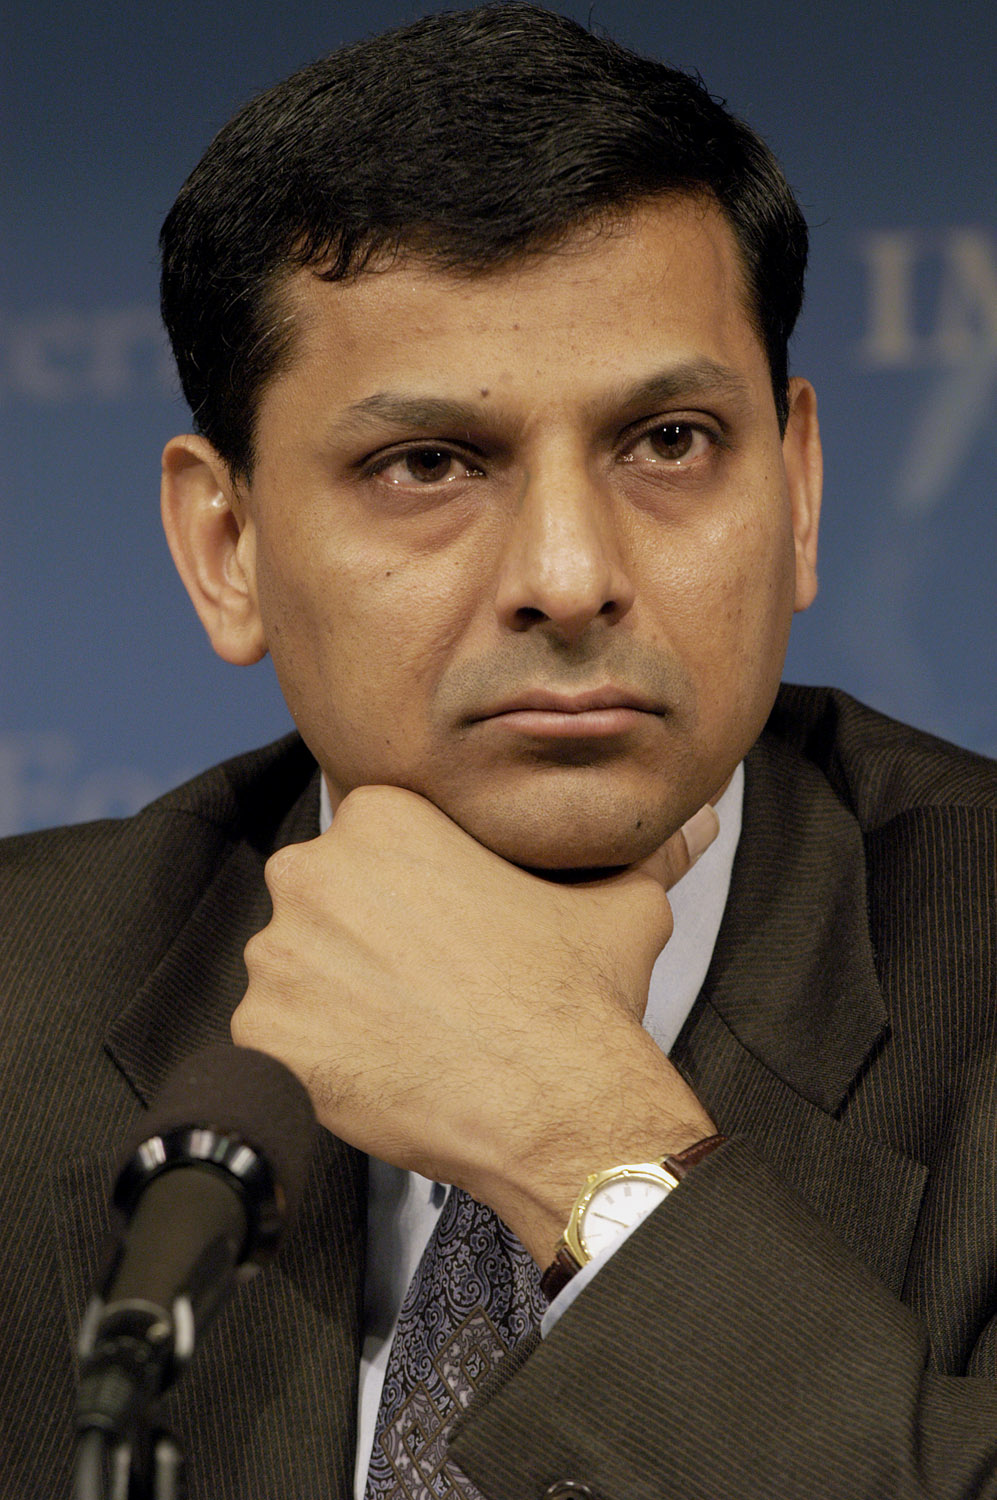 Rajan Net Worth